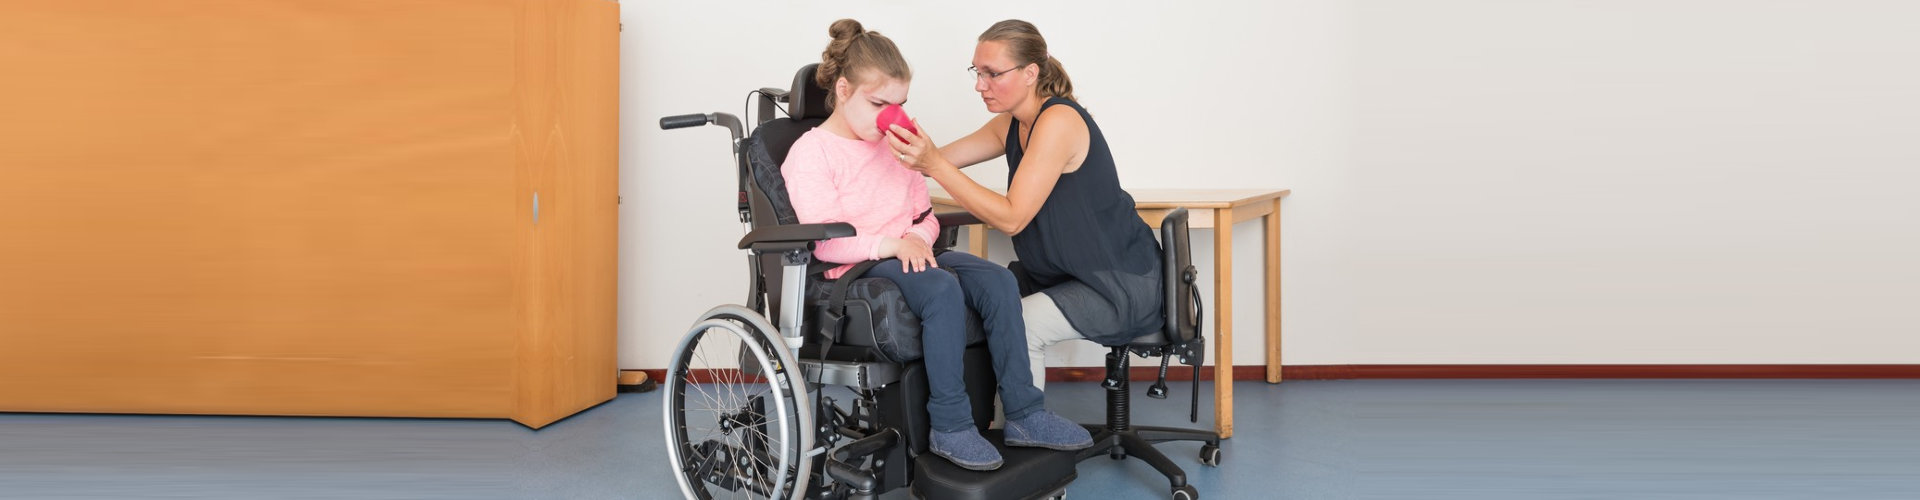 caregiver helping a child on wheelchair drink water